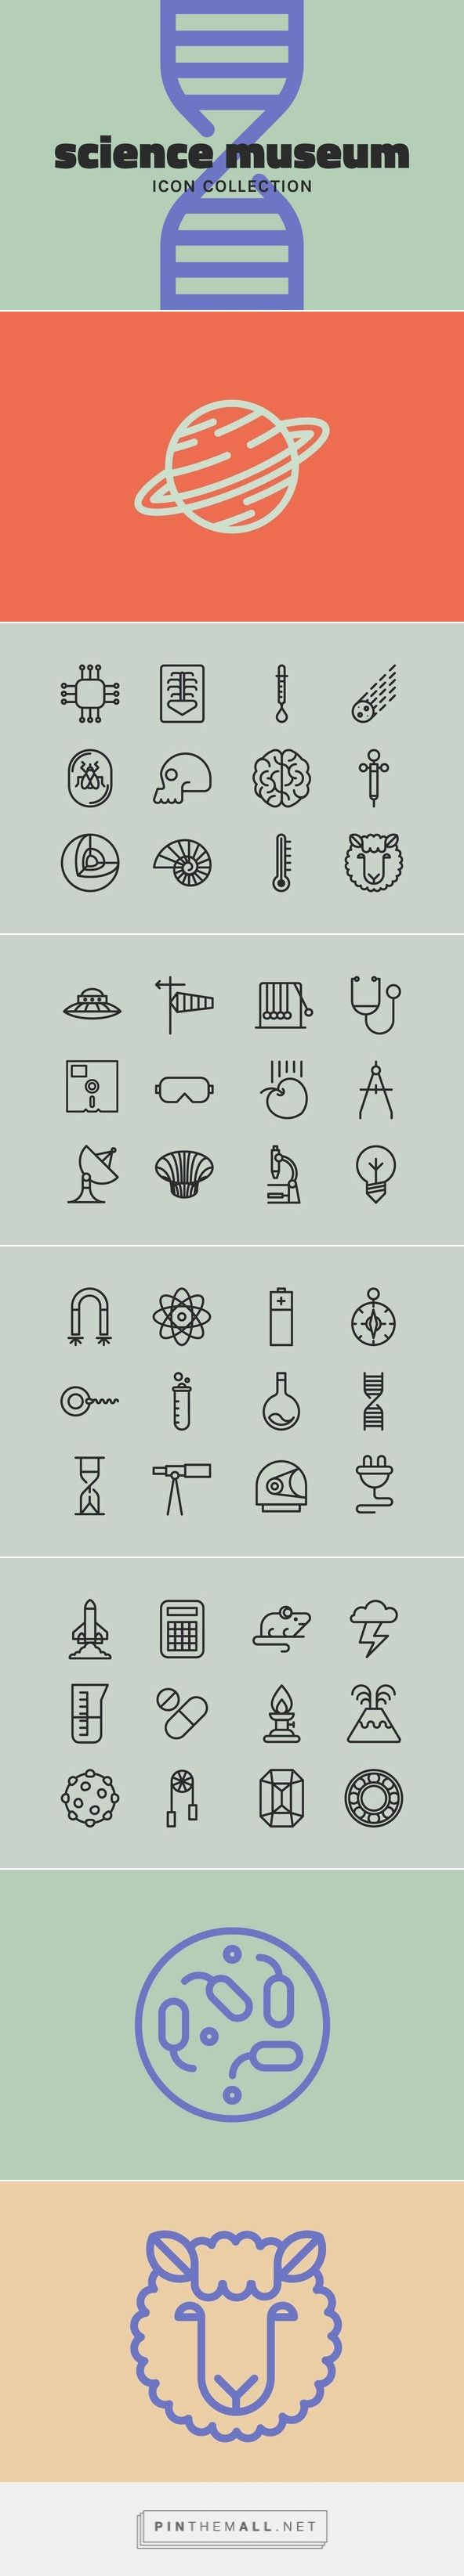 Science Museum - Graphics - YouWorkForThem #icons